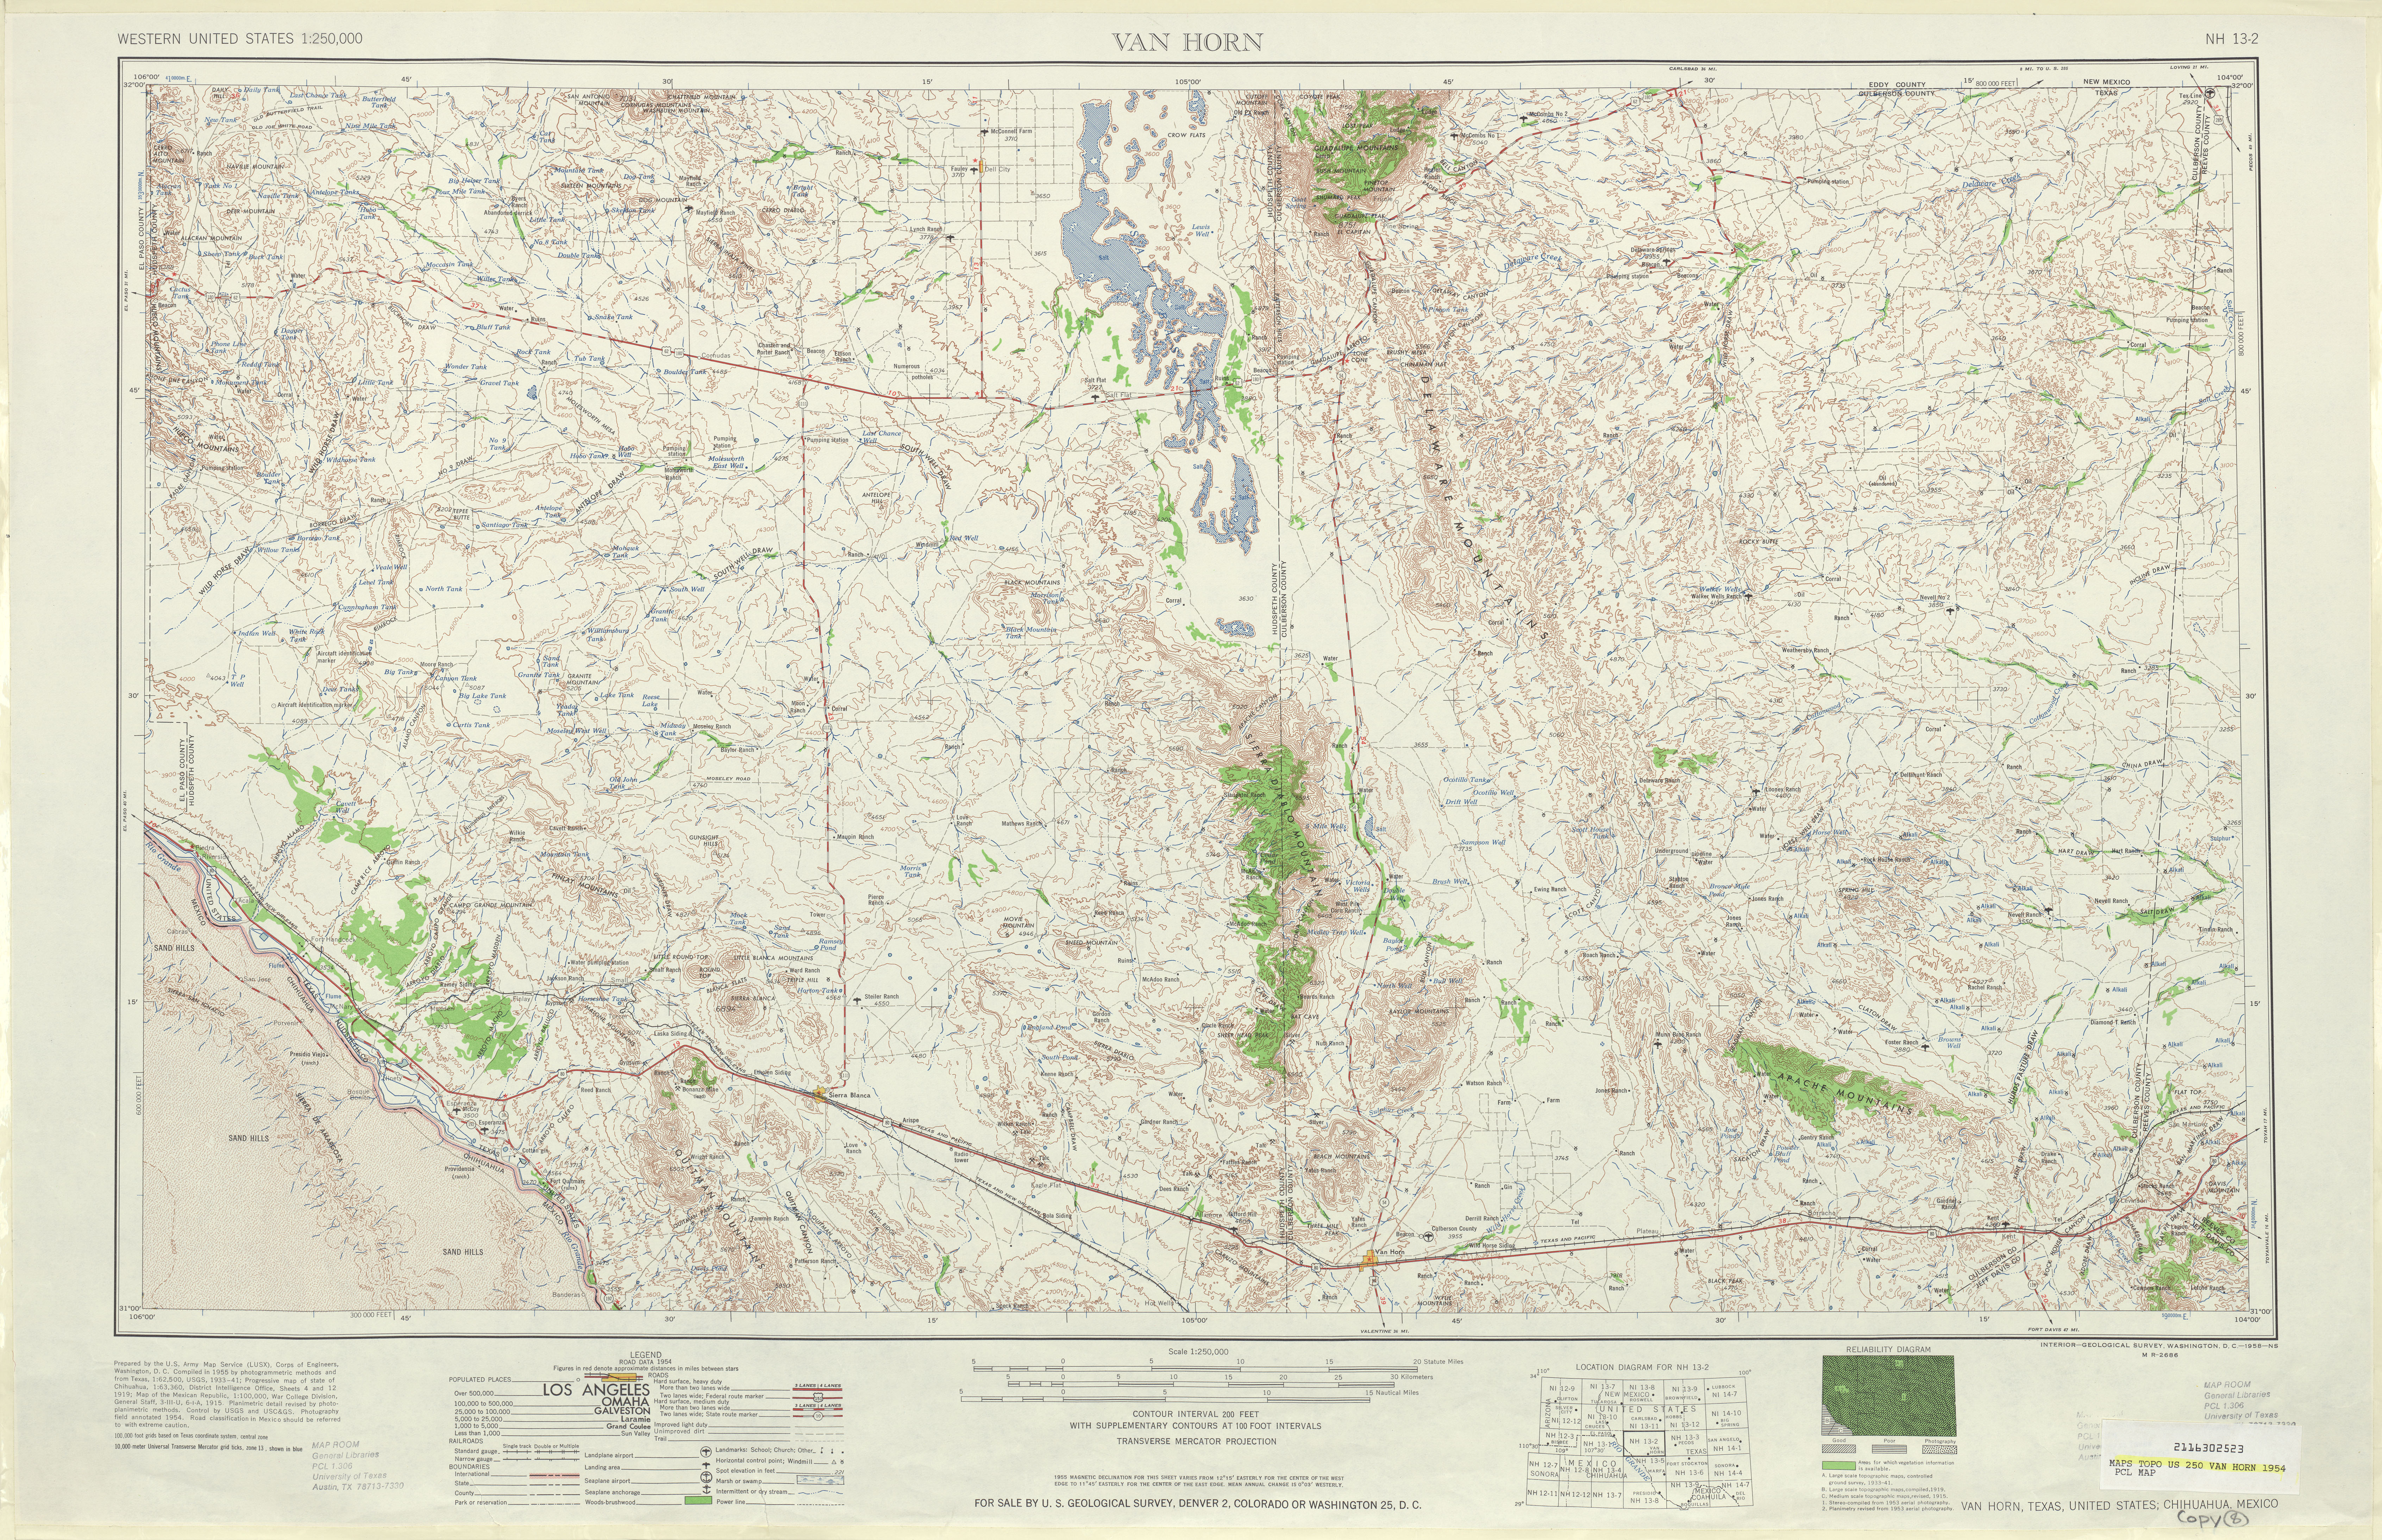 Van Horn Topographic Map Sheet, United States 1954